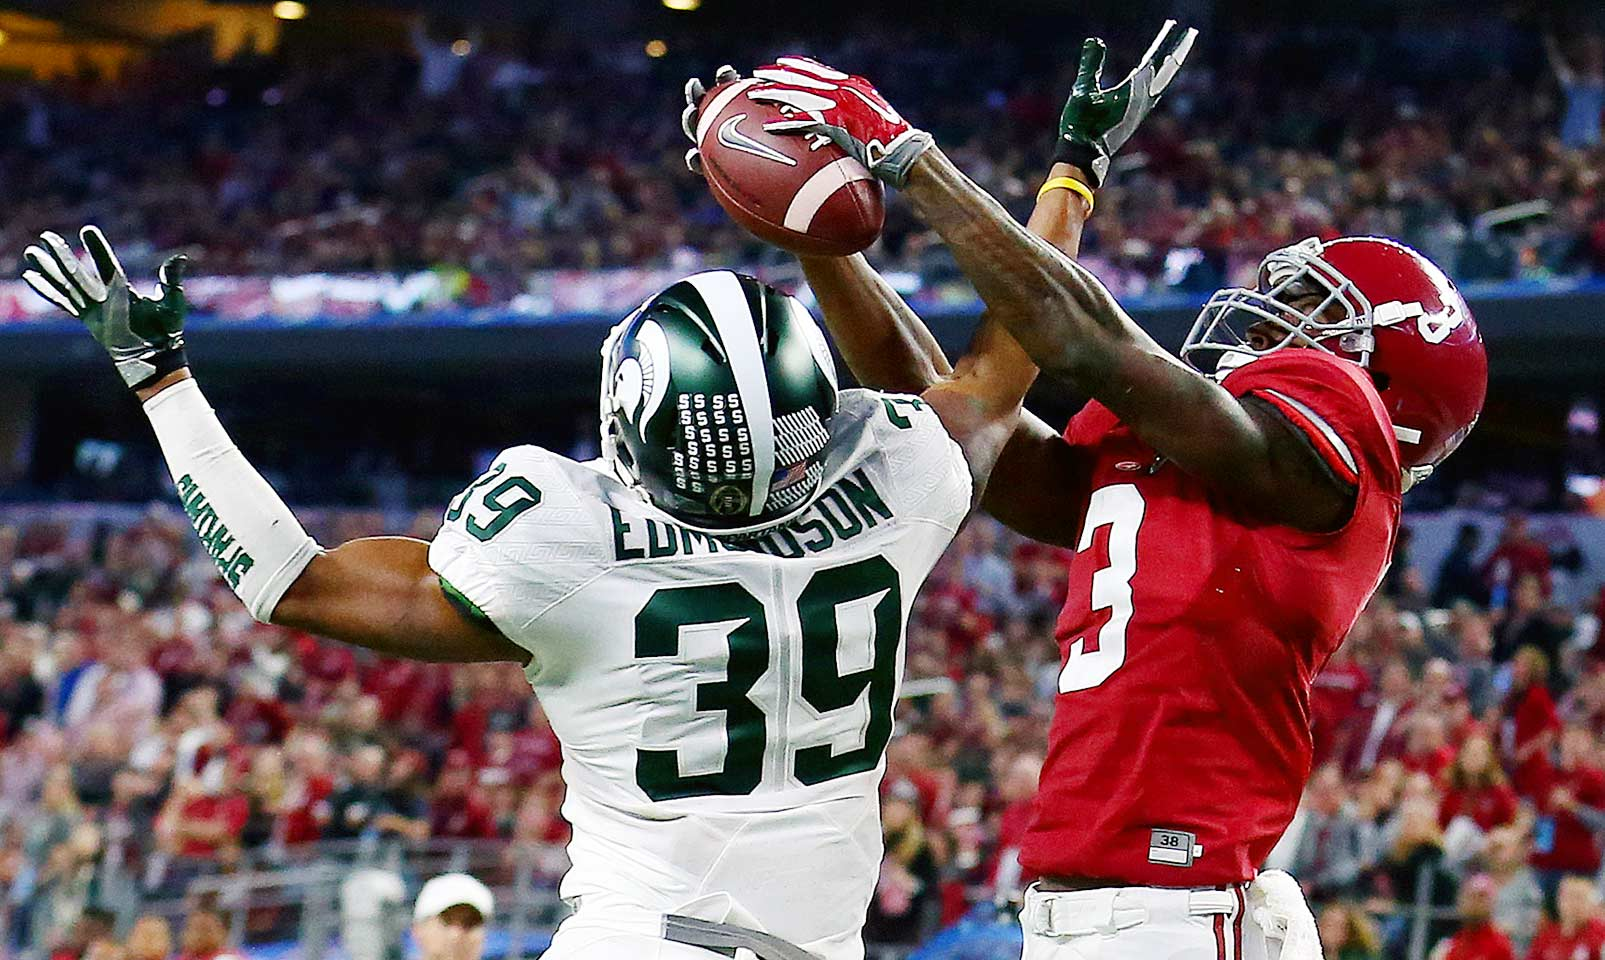 Alabama 38, Michigan State 0: The Crimson Tide blanked the Spartans in the Cotton Bowl to advance to the national championship game against Clemson. True freshman Calvin Ridley led the offense with eight catches for 138 yards and two touchdowns.